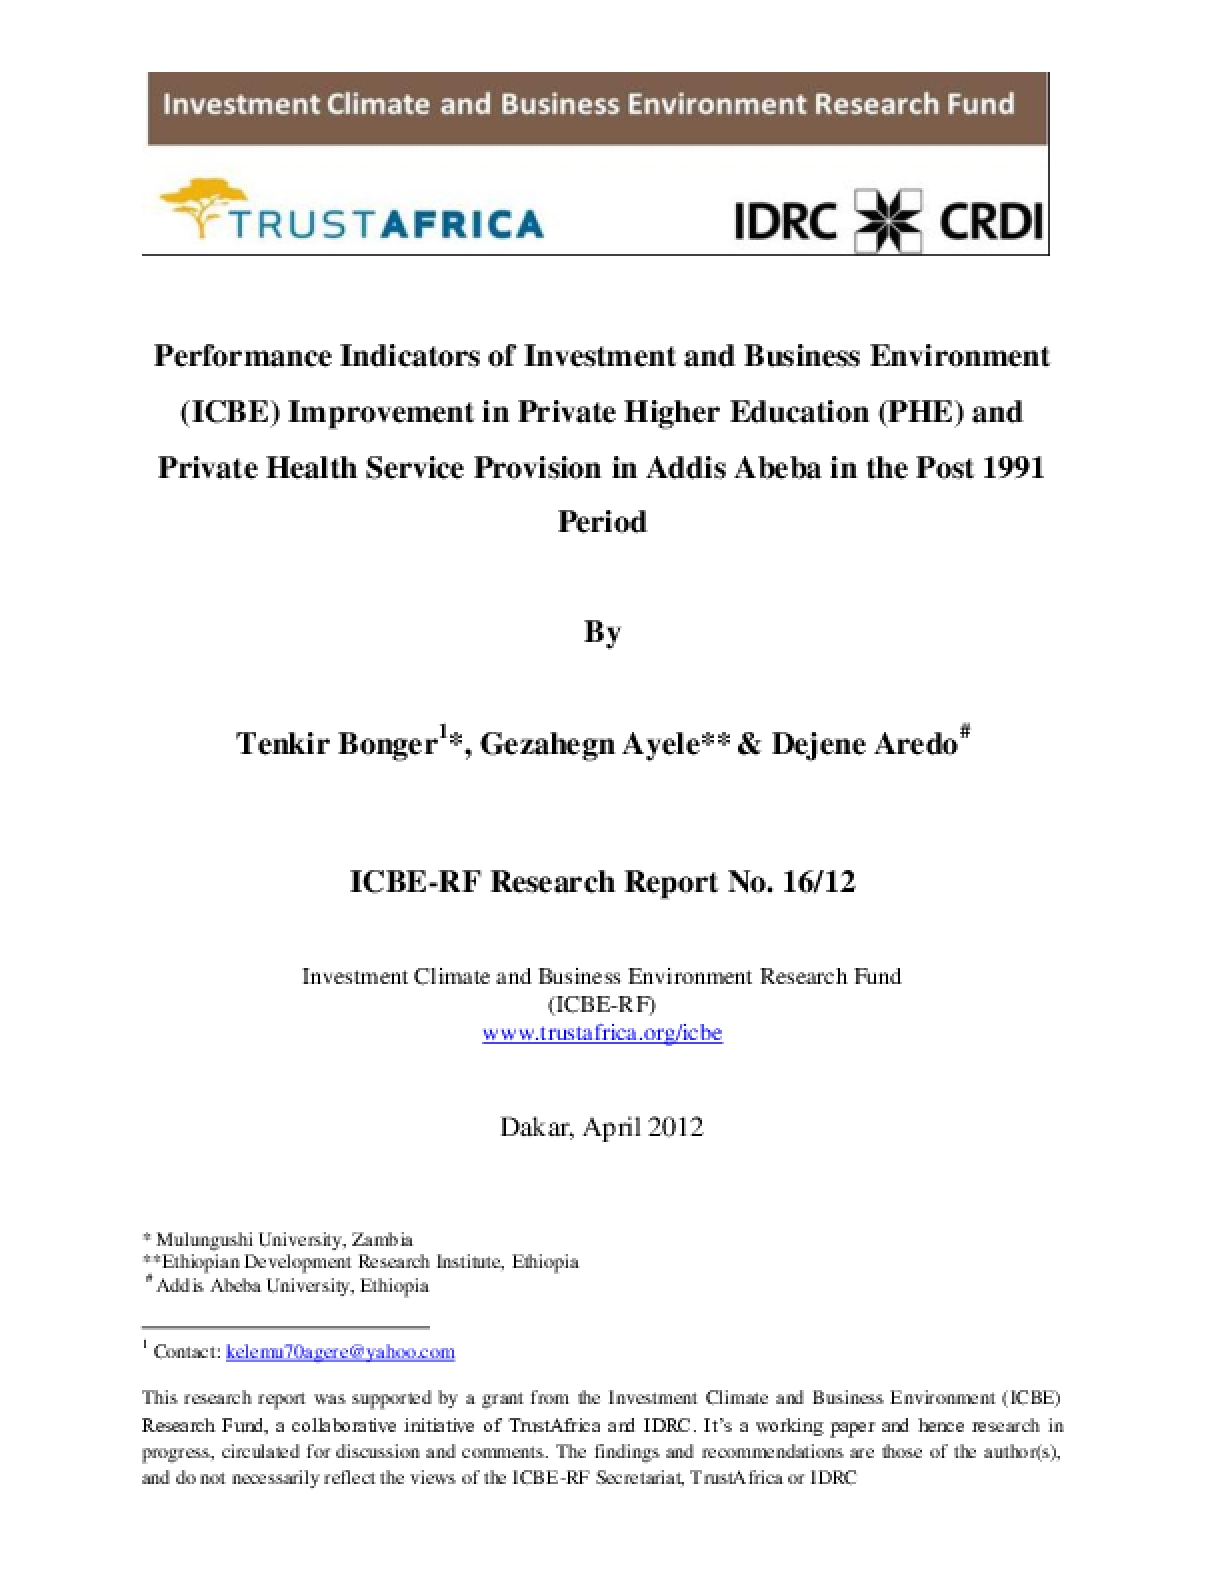 Performance Indicators of Investment and Business Environment (ICBE) Improvement in Private Higher Education (PHE) and Private Health Service Provision in Addis Abeba in the Post 1991 Period